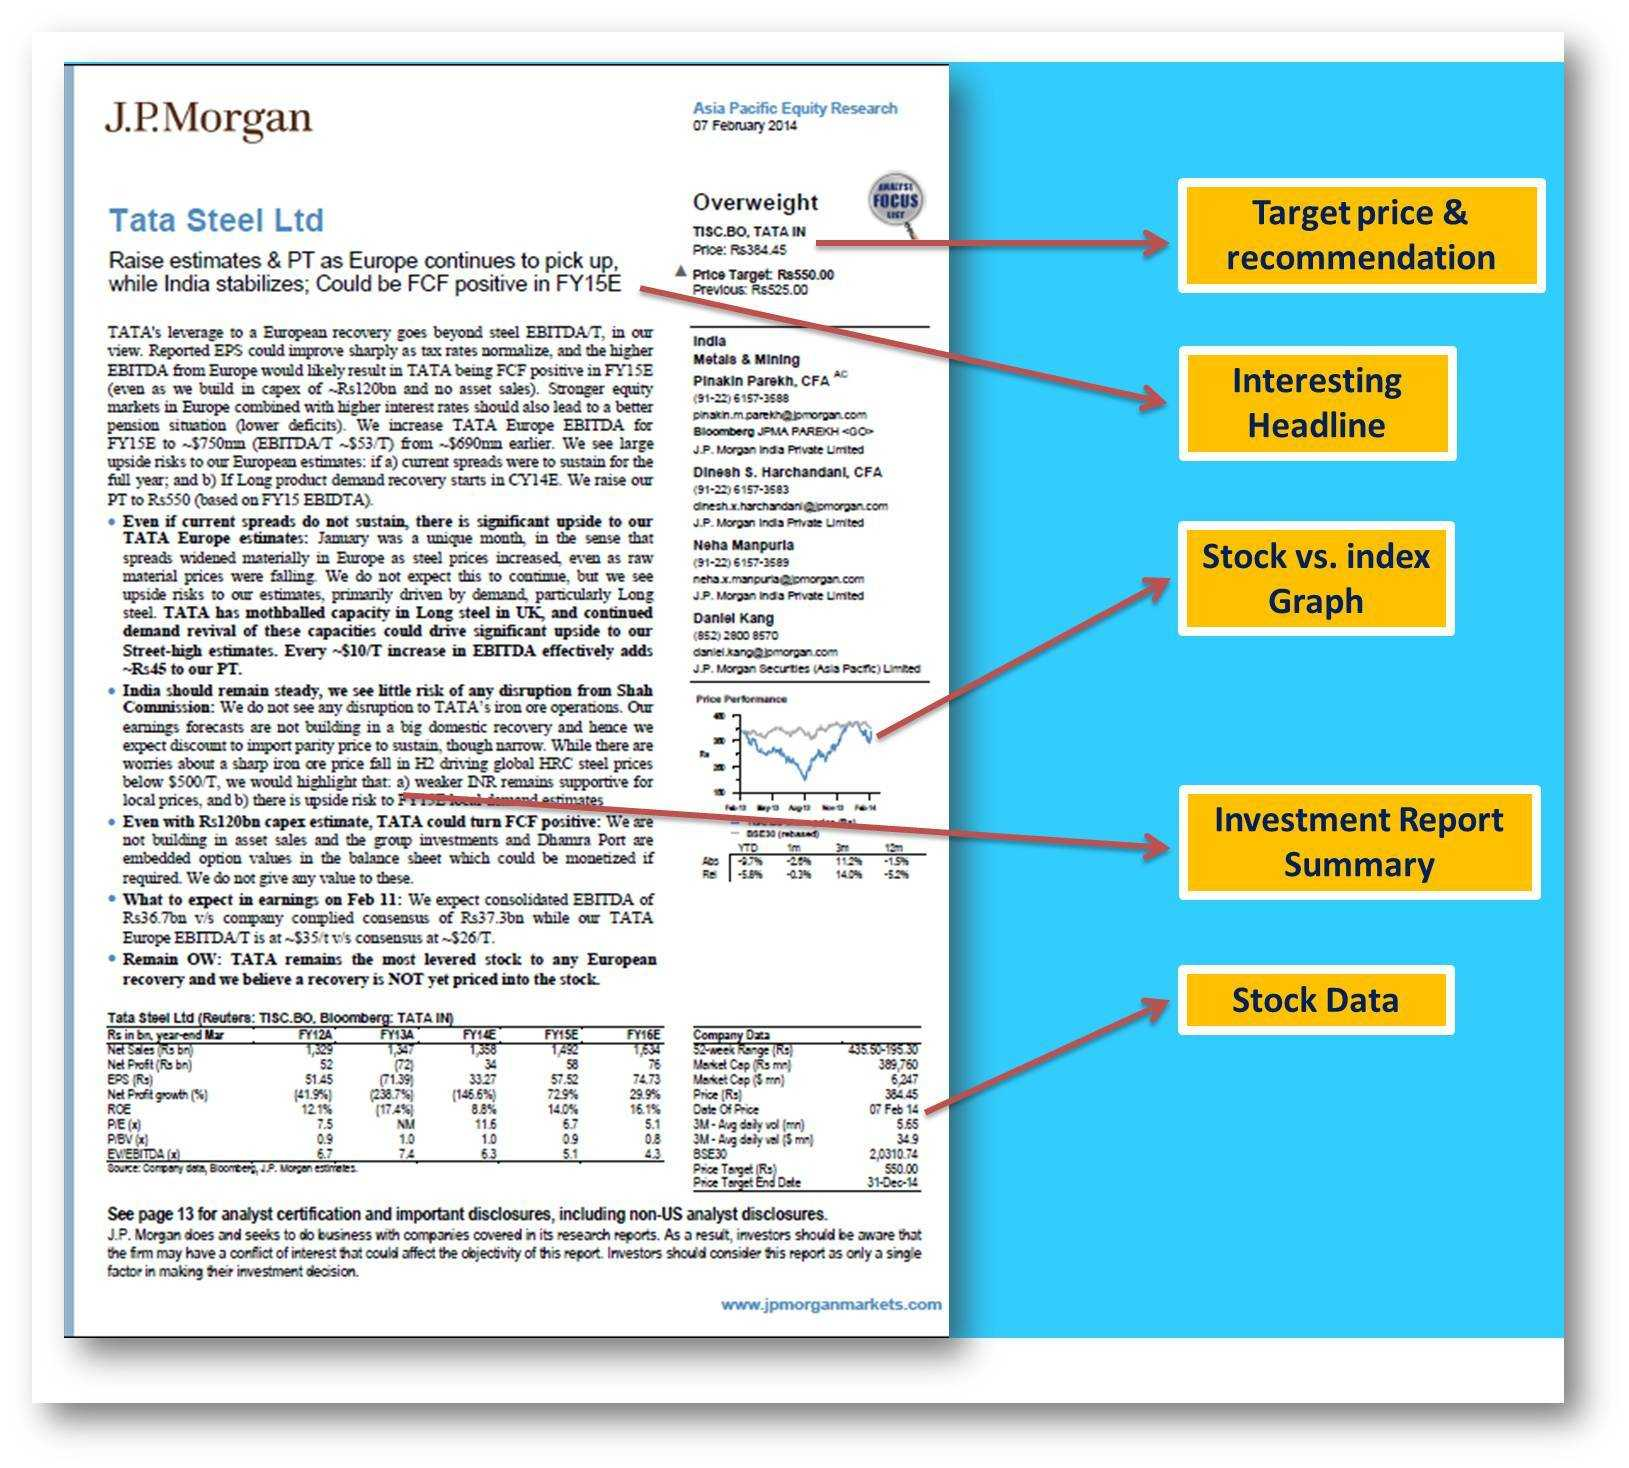 10 Powerful Golden Rules To Write Equity Research Report throughout Equity Research Report Template